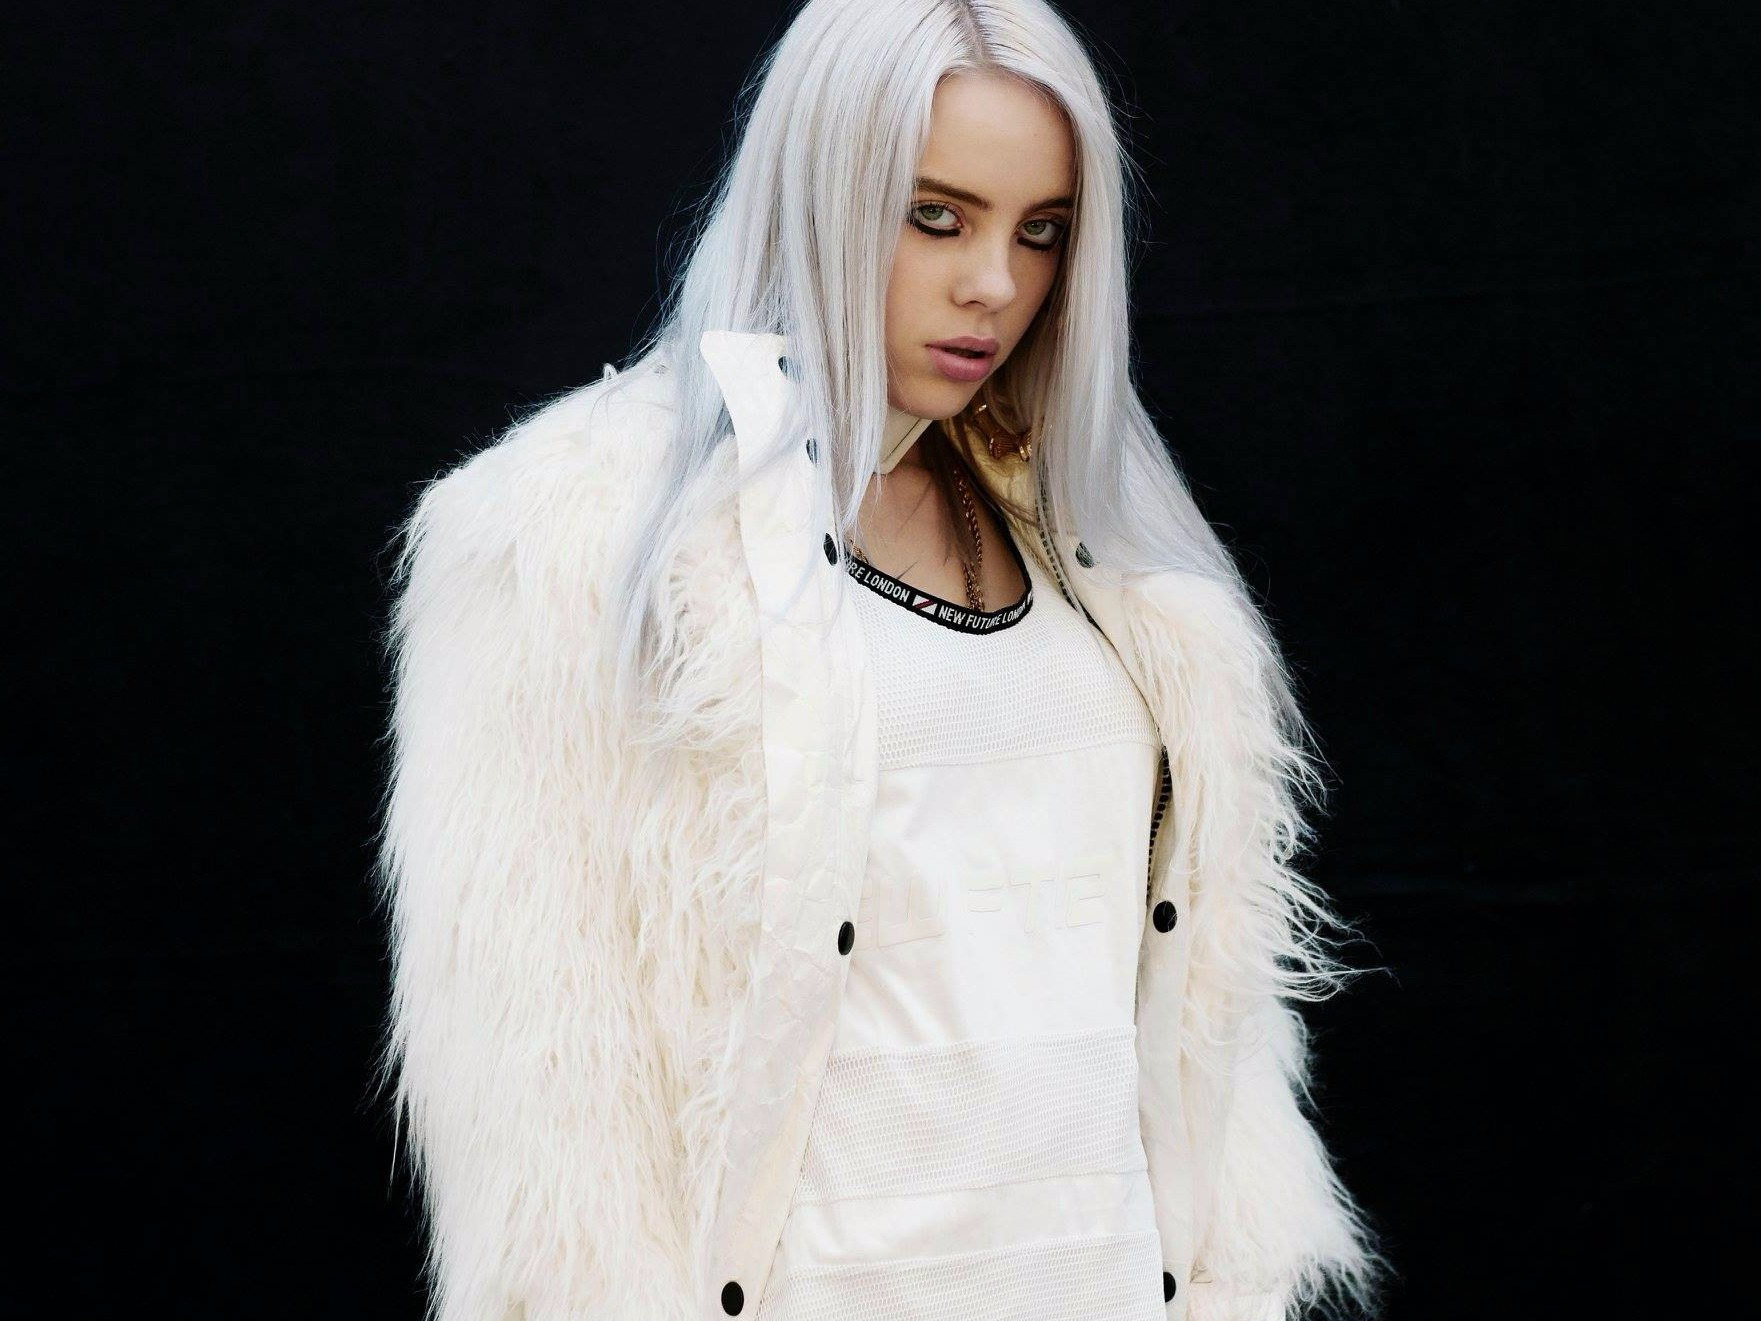 Billie Eilish Makes Being a 15 Year Old Pop Star Look Easy